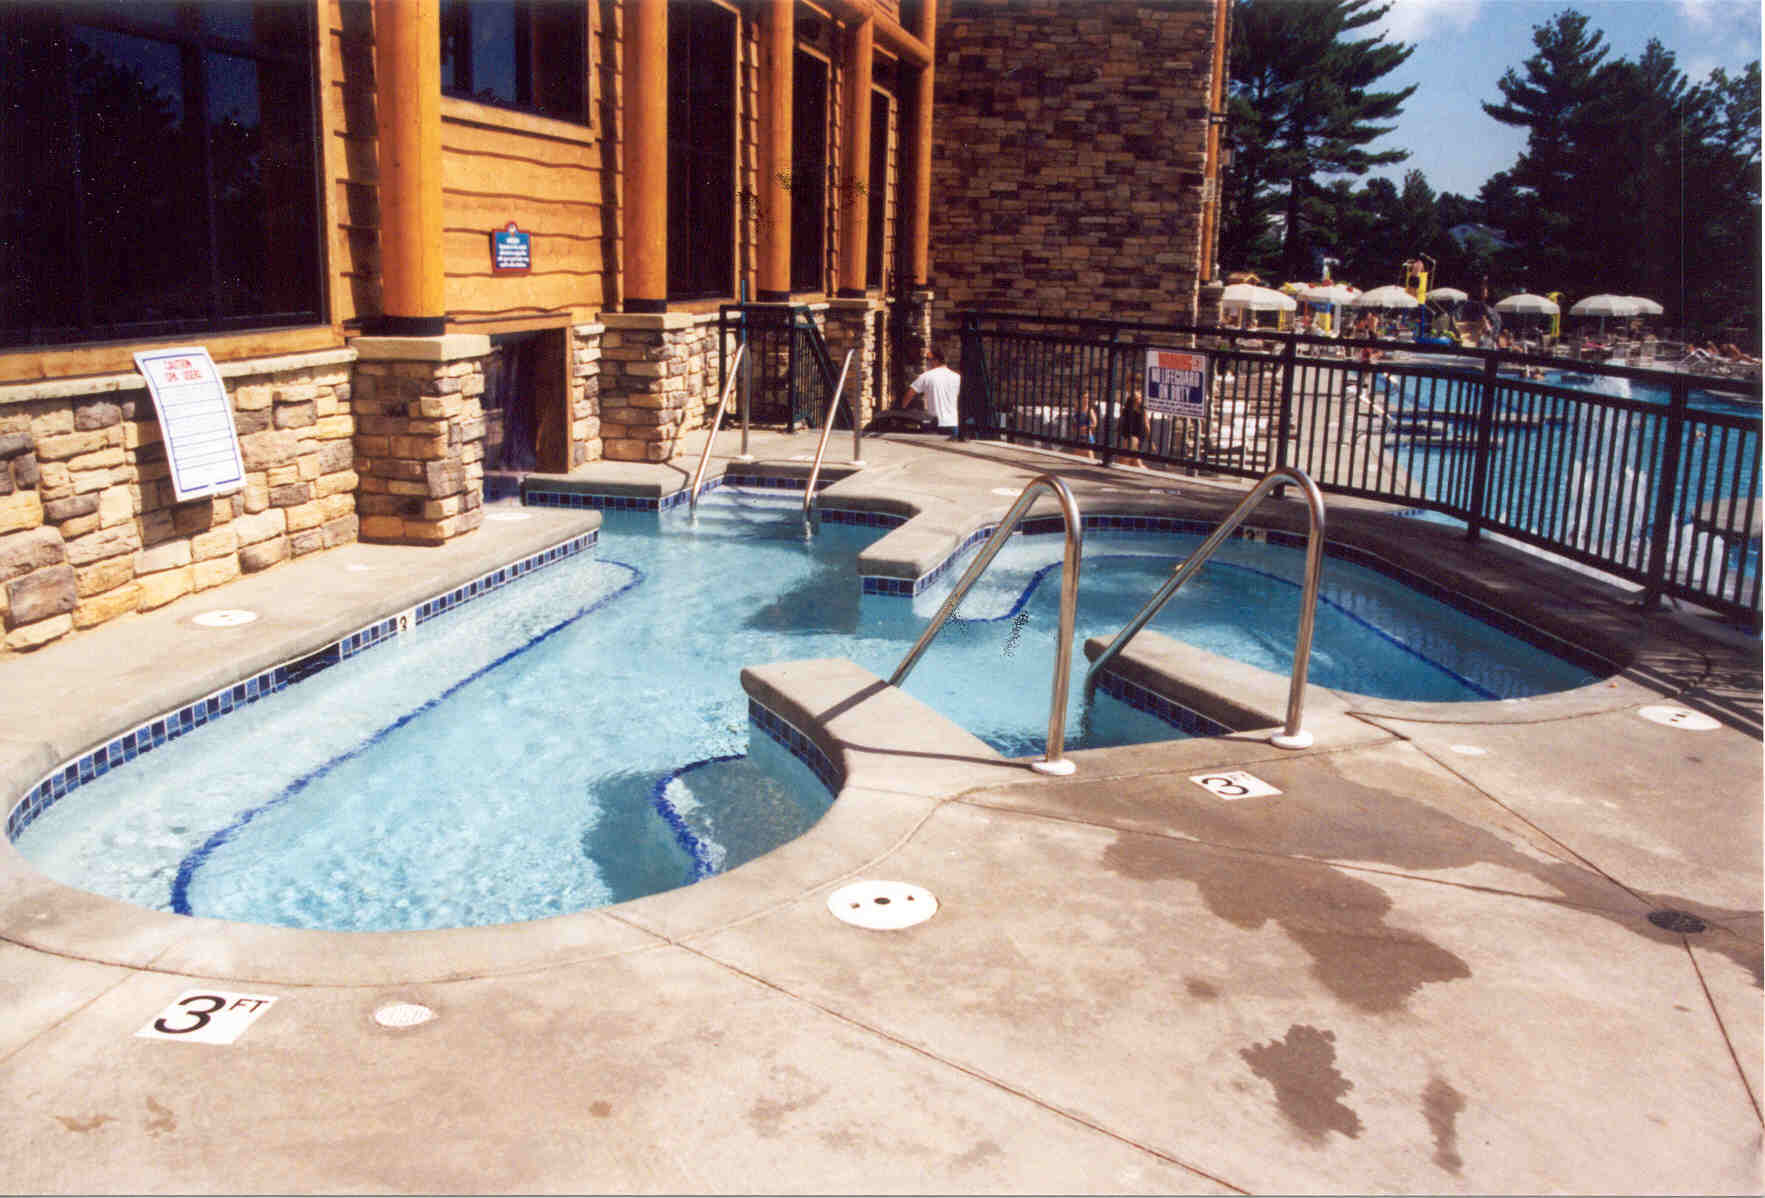 Outdoor whirlpool at the Wilderness on the Lake in Lake Delton, WI